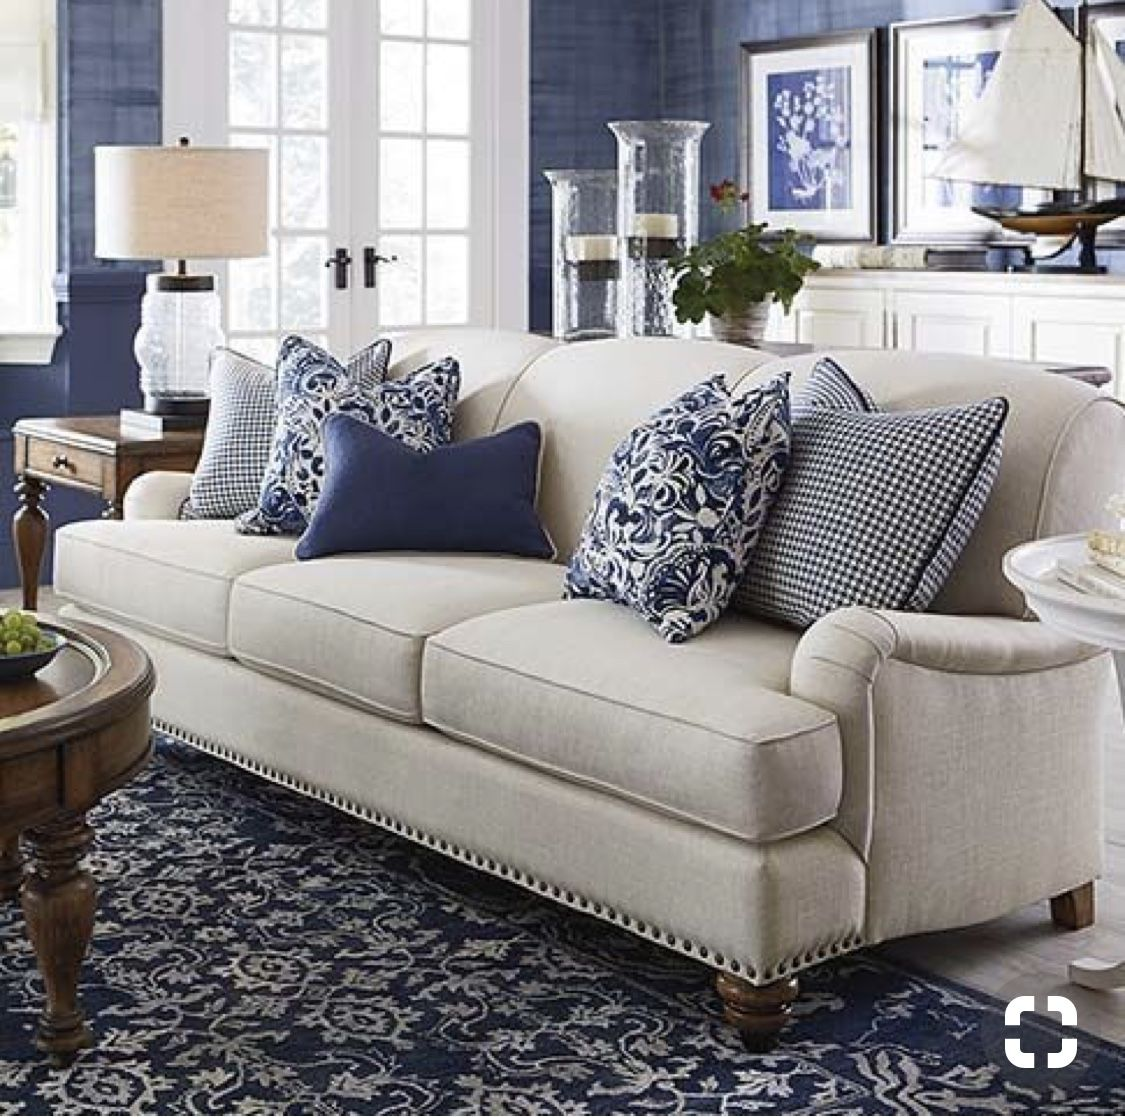 Pin By Jessica Daly On Homes Blue Living Room Living Room Decor Inspiration Coastal Living Rooms